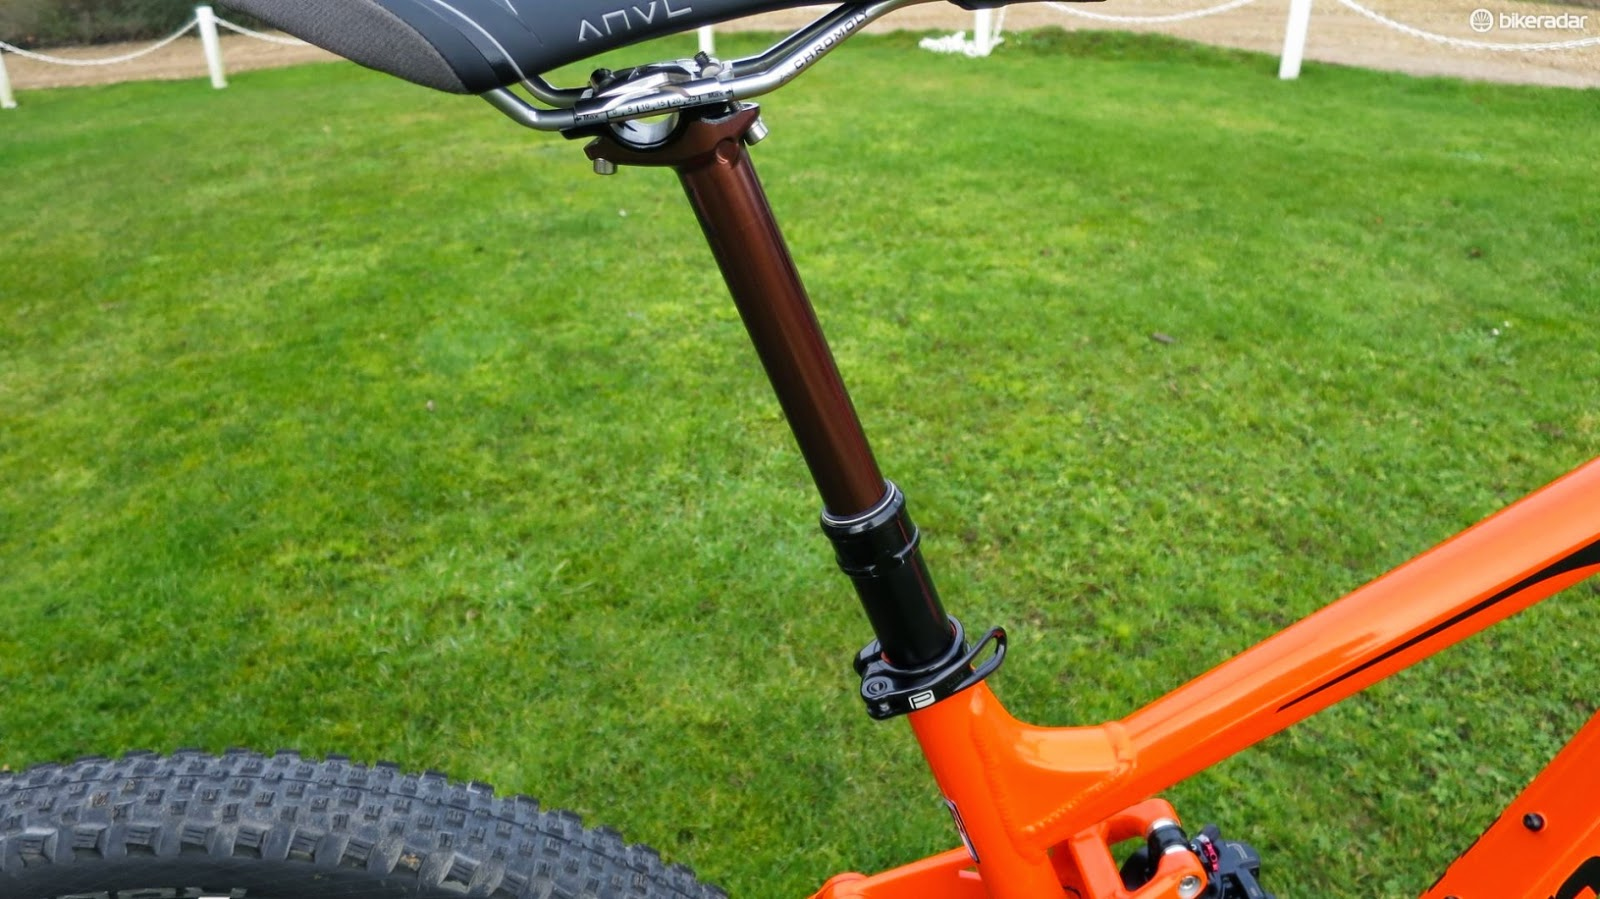 Bike News, Report, New Product, marzocchi new rear shock, marzocchi new dropper post